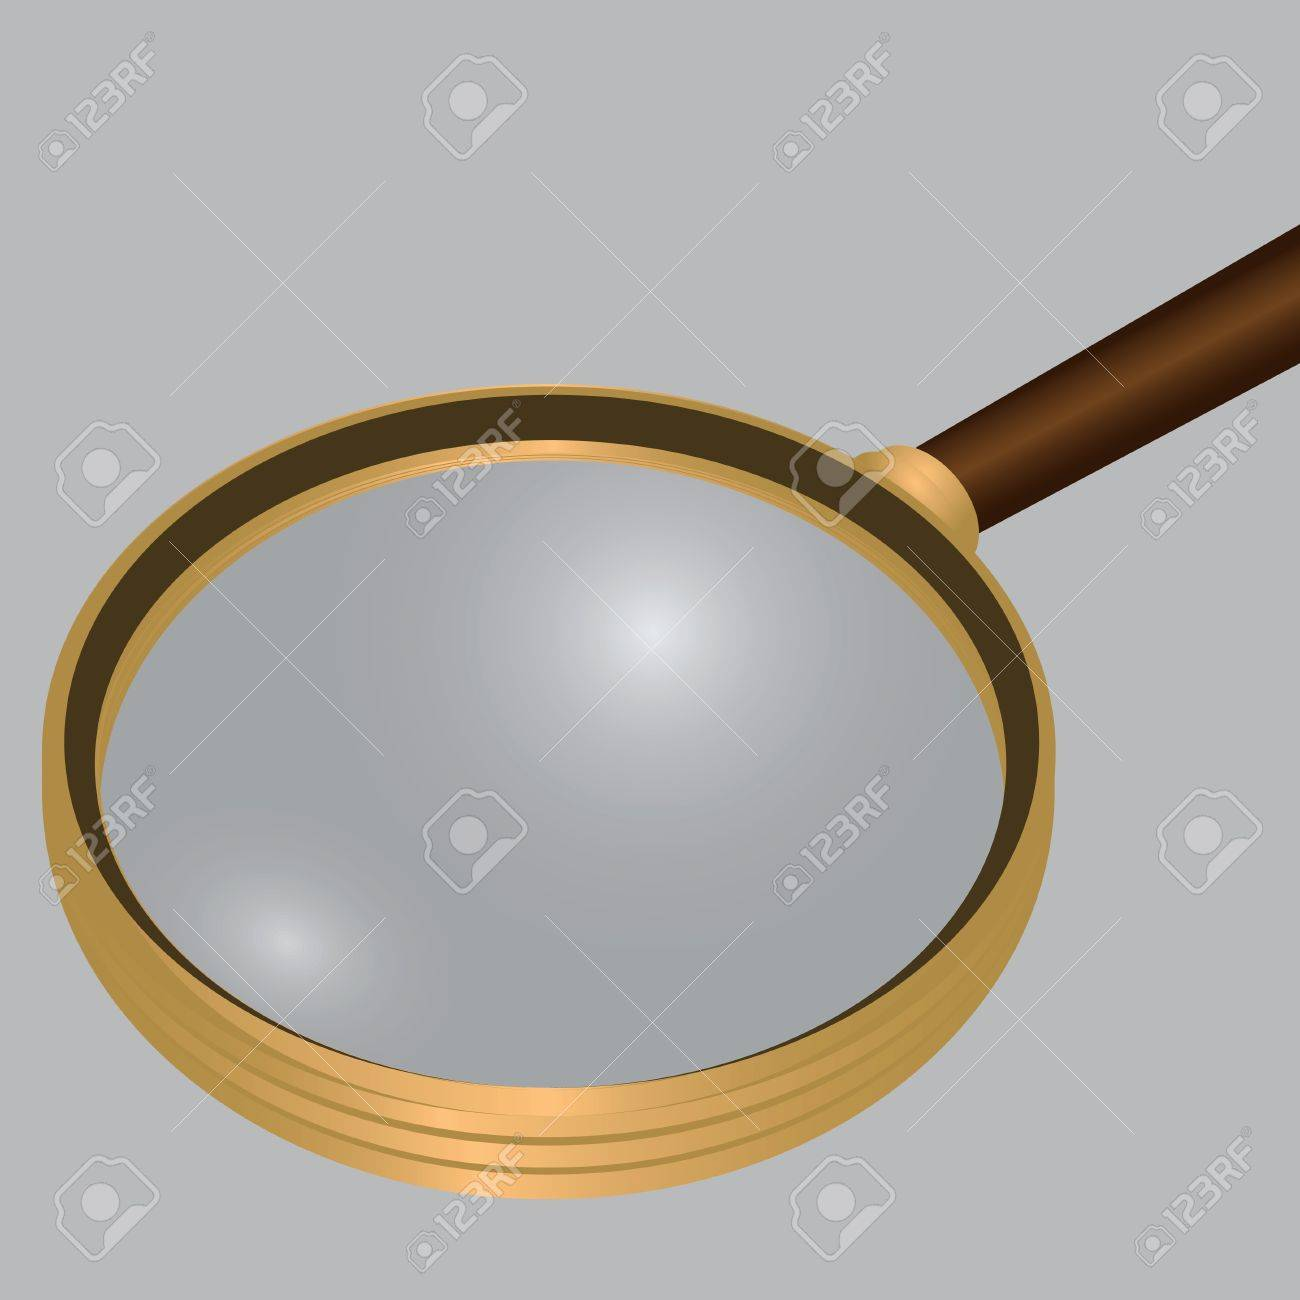 Antique magnifying glass in a frame of yellow materialla. Vector illustration. Stock Vector - 14716570